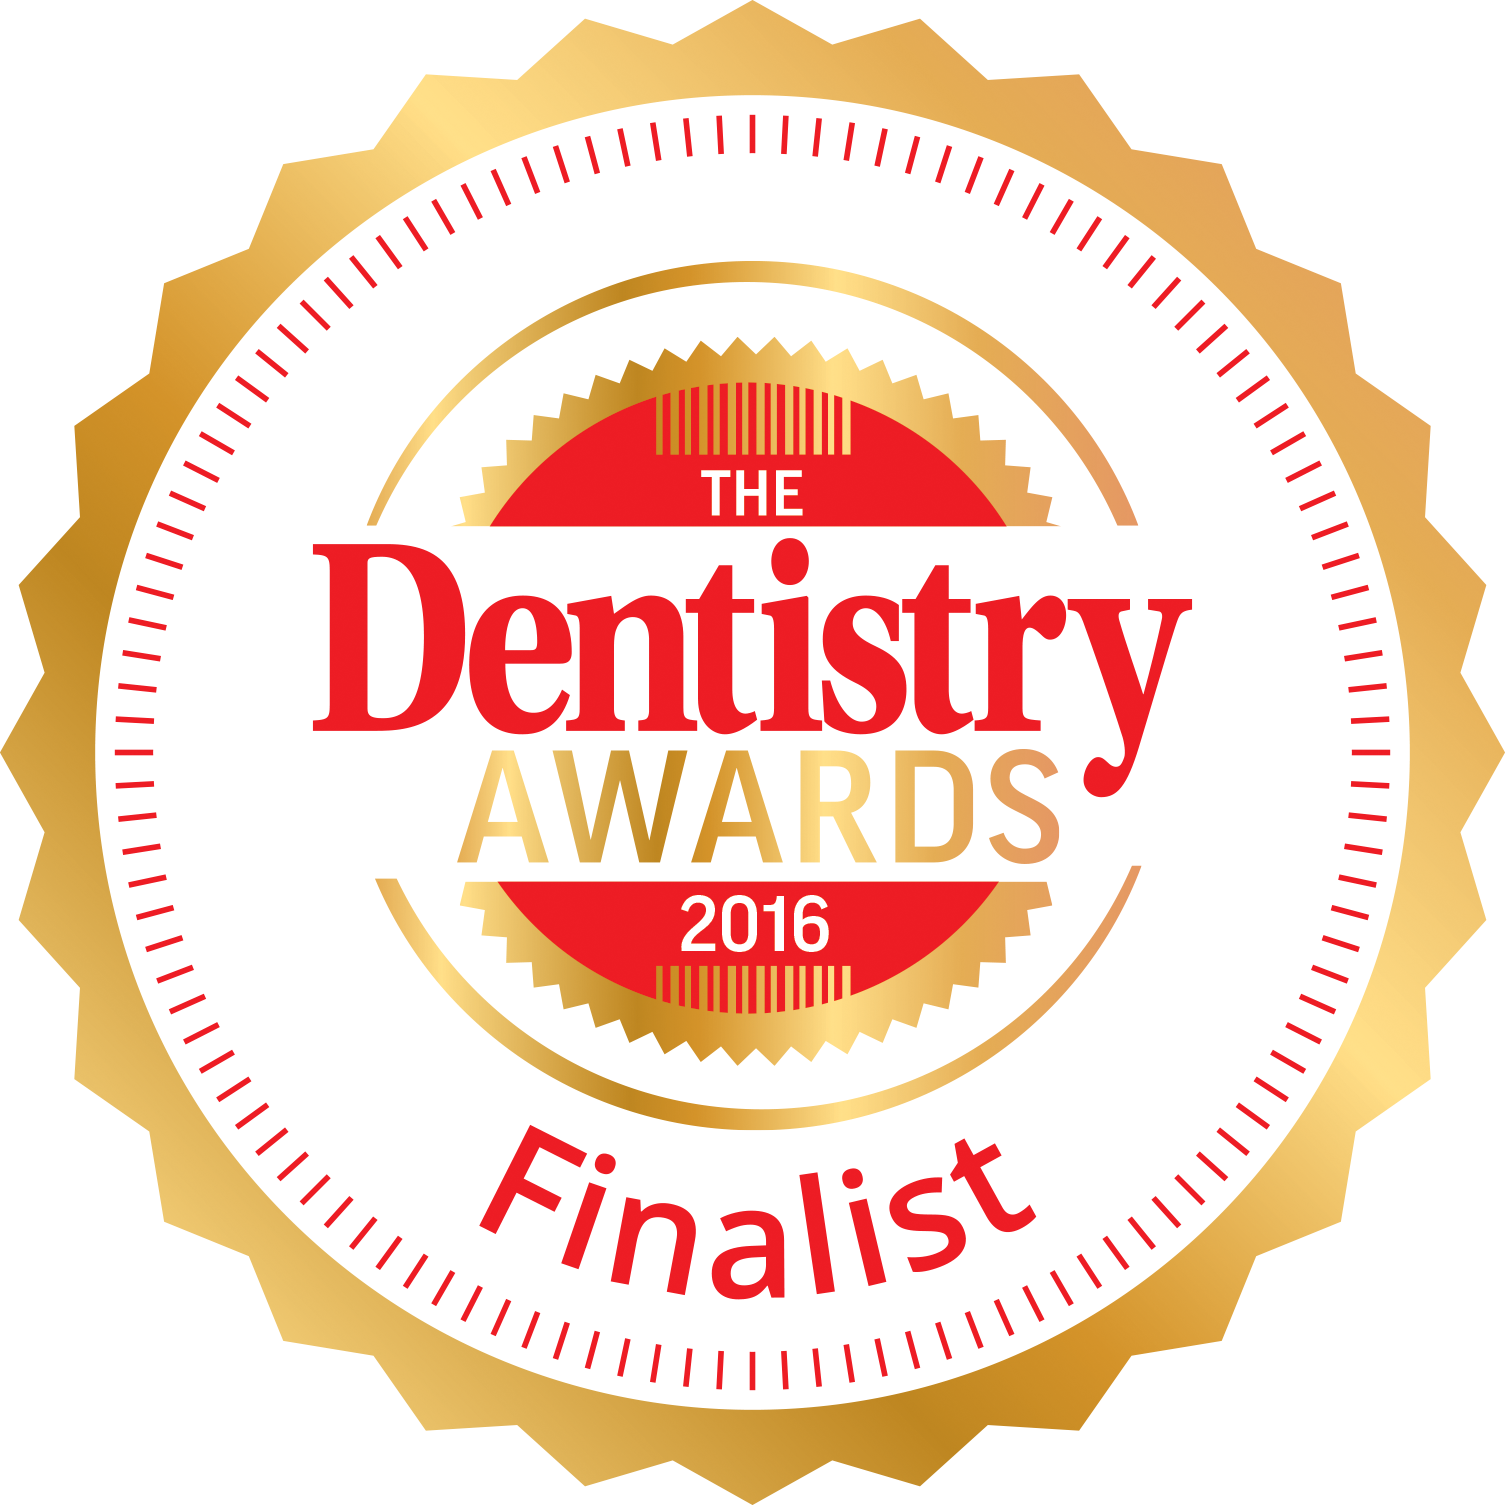 Awards-Finalist-Dentistry copy.png